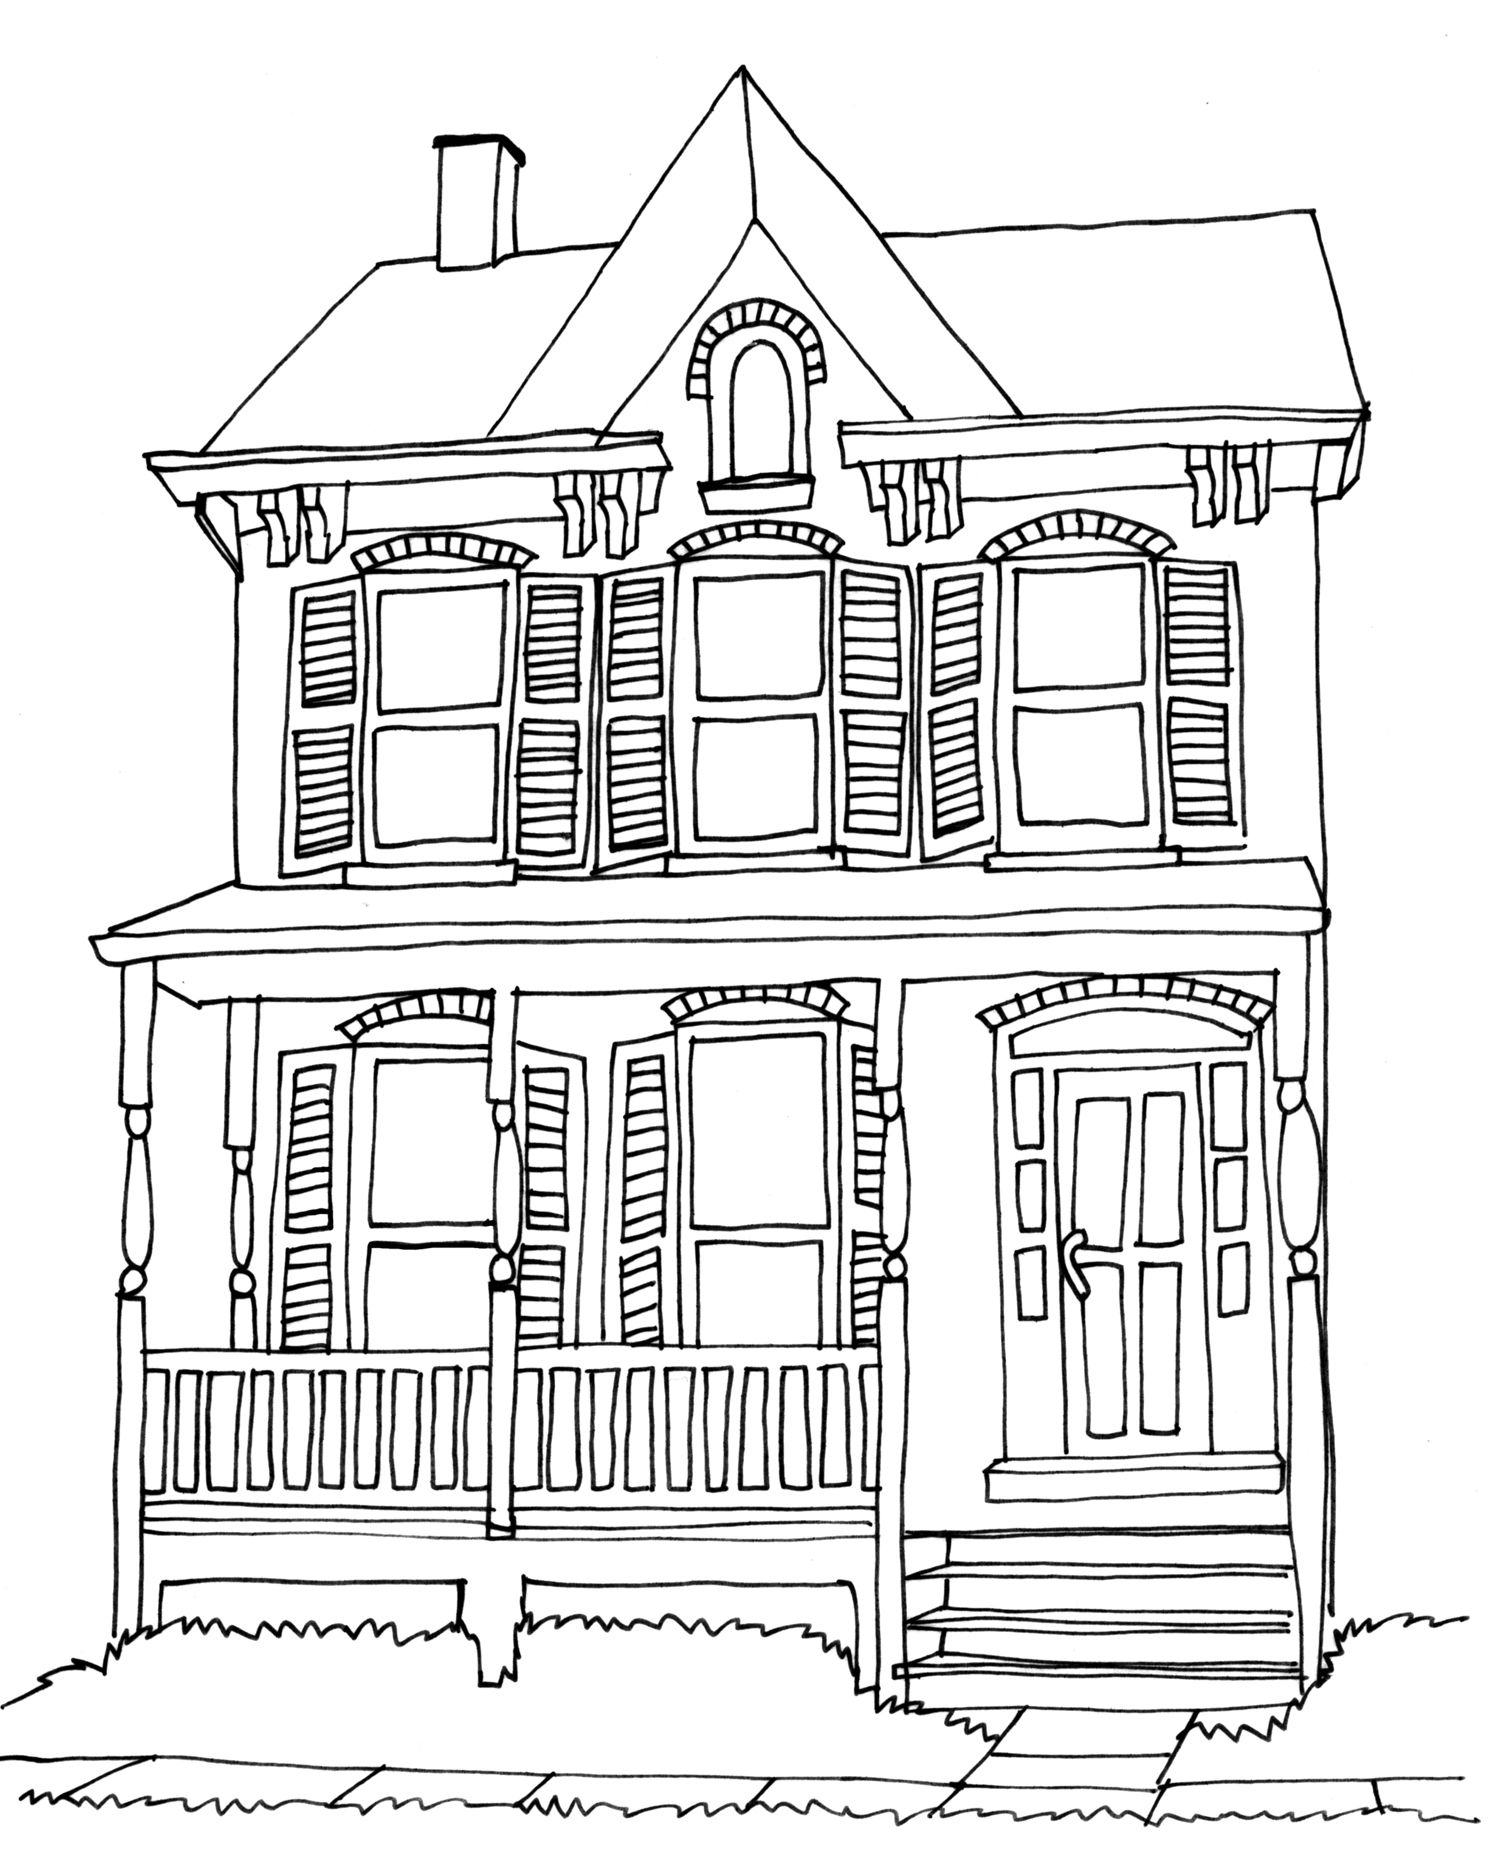 dream house coloring pages house from a child dream tanyalmera 123rf architecture pages house dream coloring